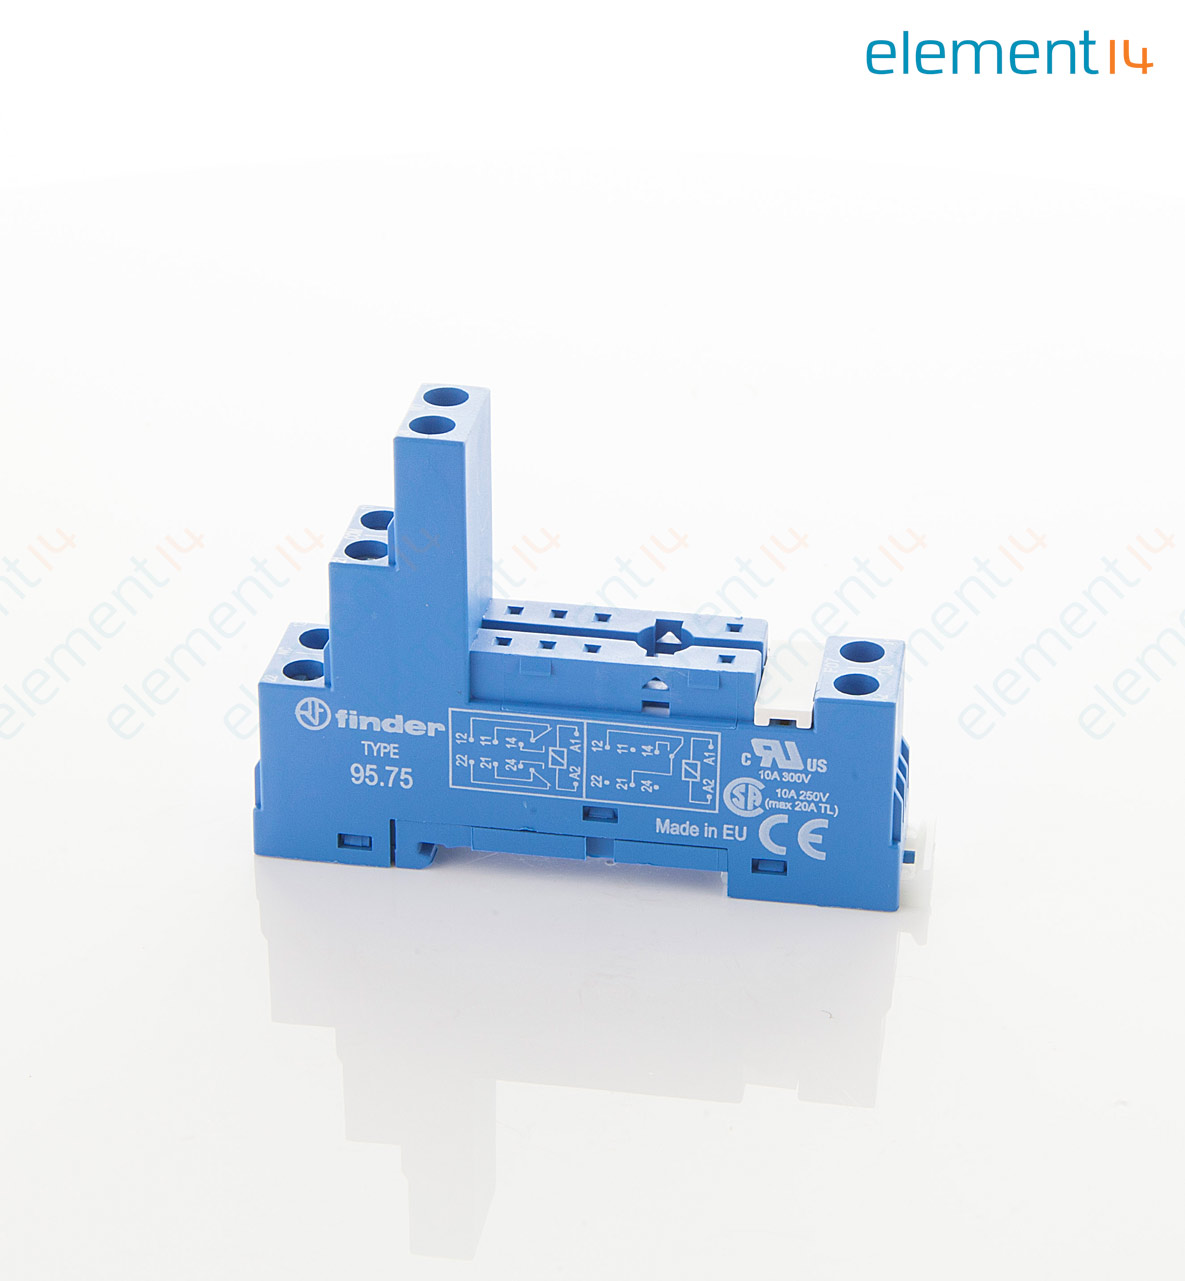 finder relay 8 pin diagram best wiring library  95 75sma finder, relay socket, din rail, panel add to compare